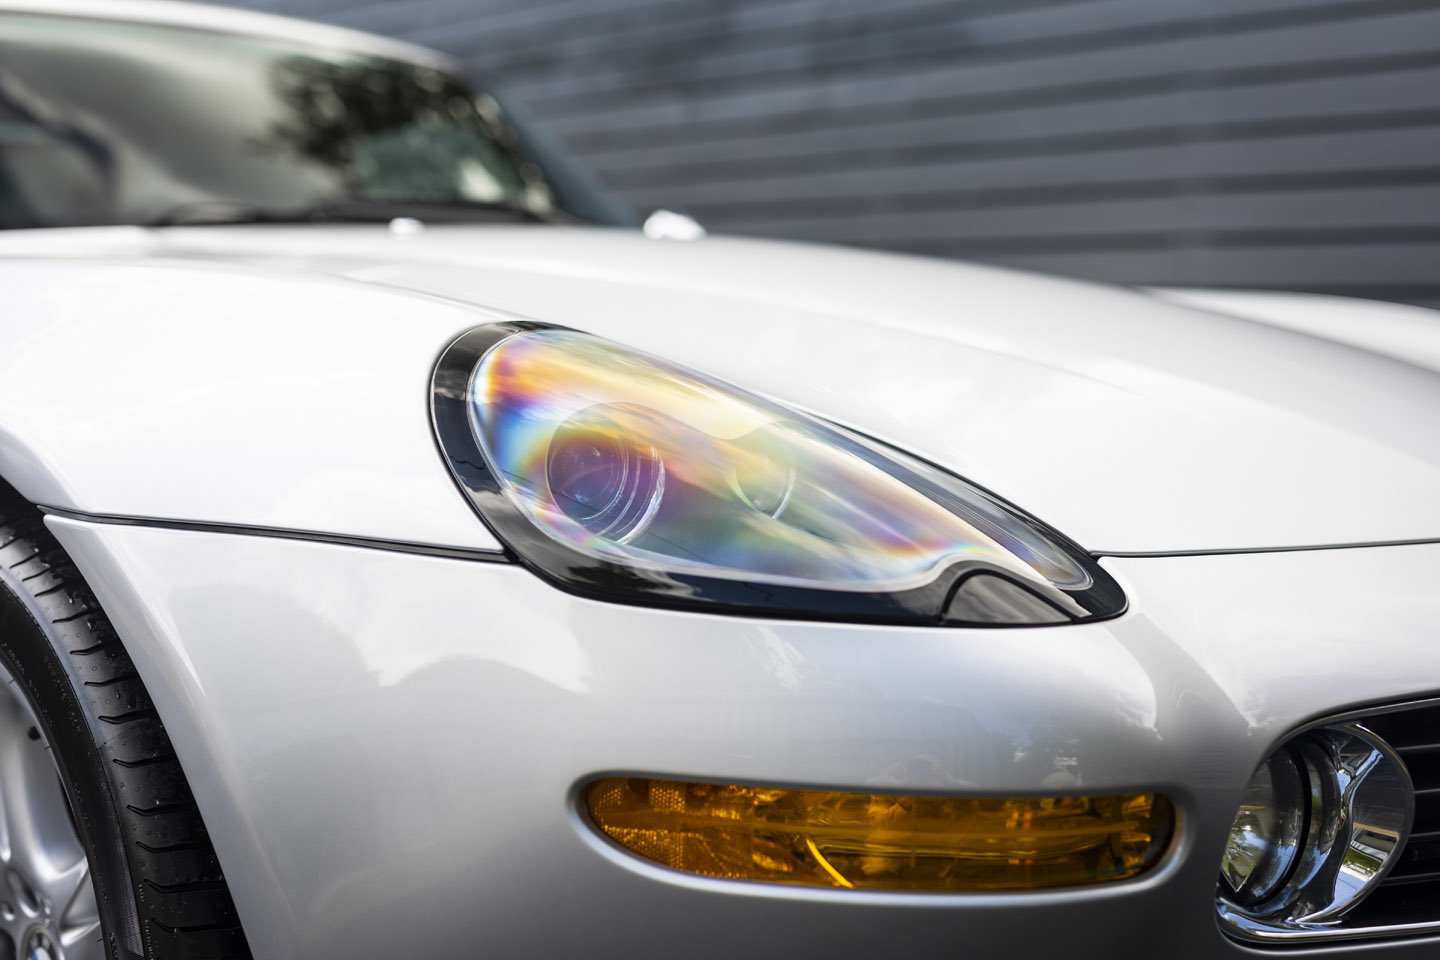 2001 BMW Z8 Roadster ONLY 10500 MILES UK CAR For Sale (picture 8 of 22)